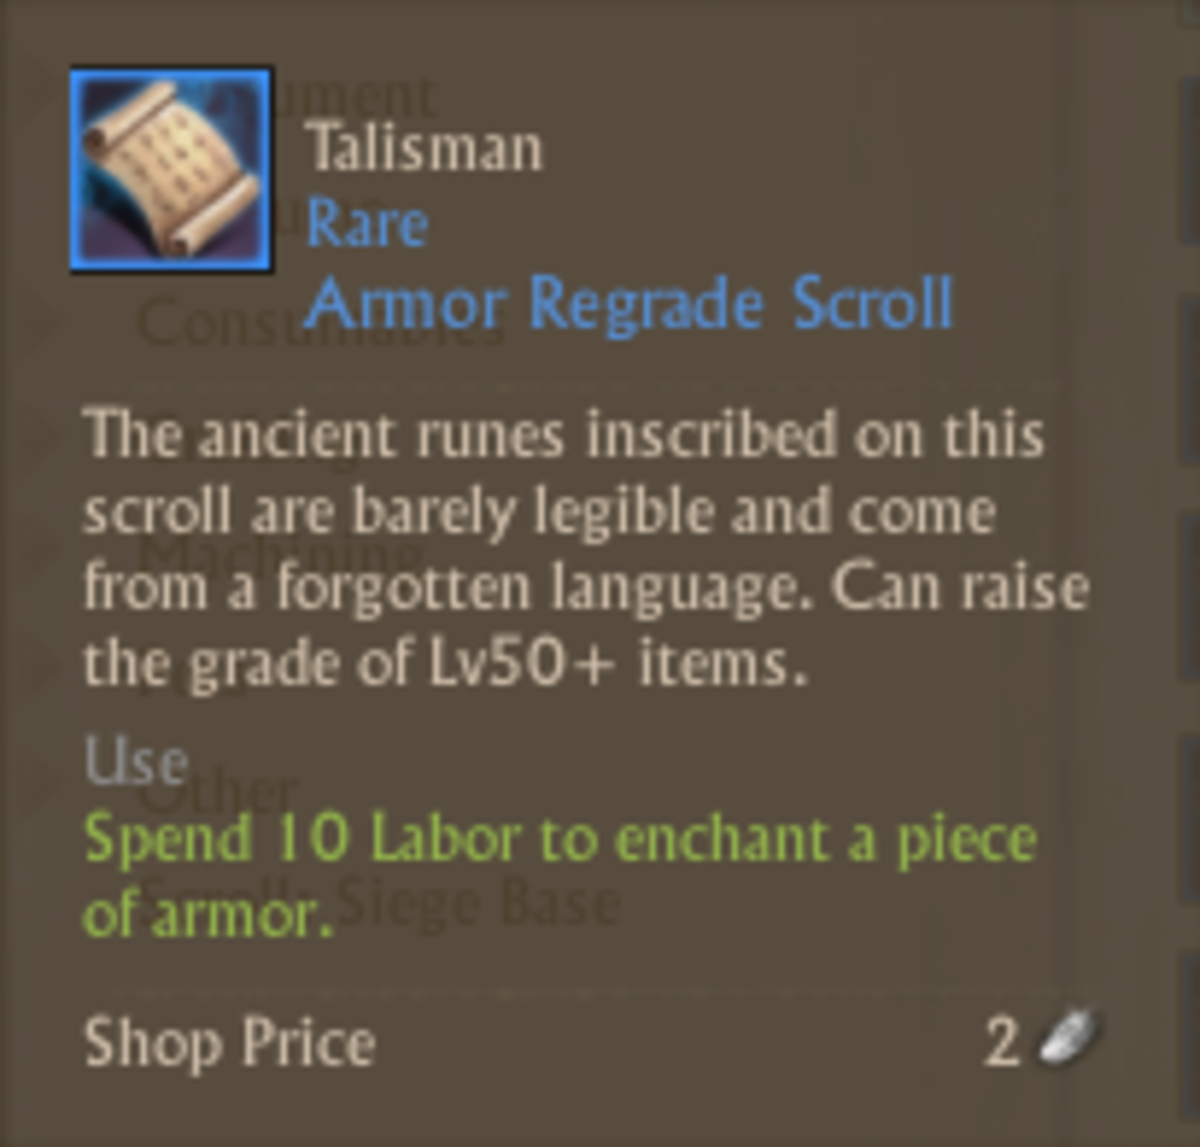 archeage-weapon-armor-and-accessory-regrading-guide